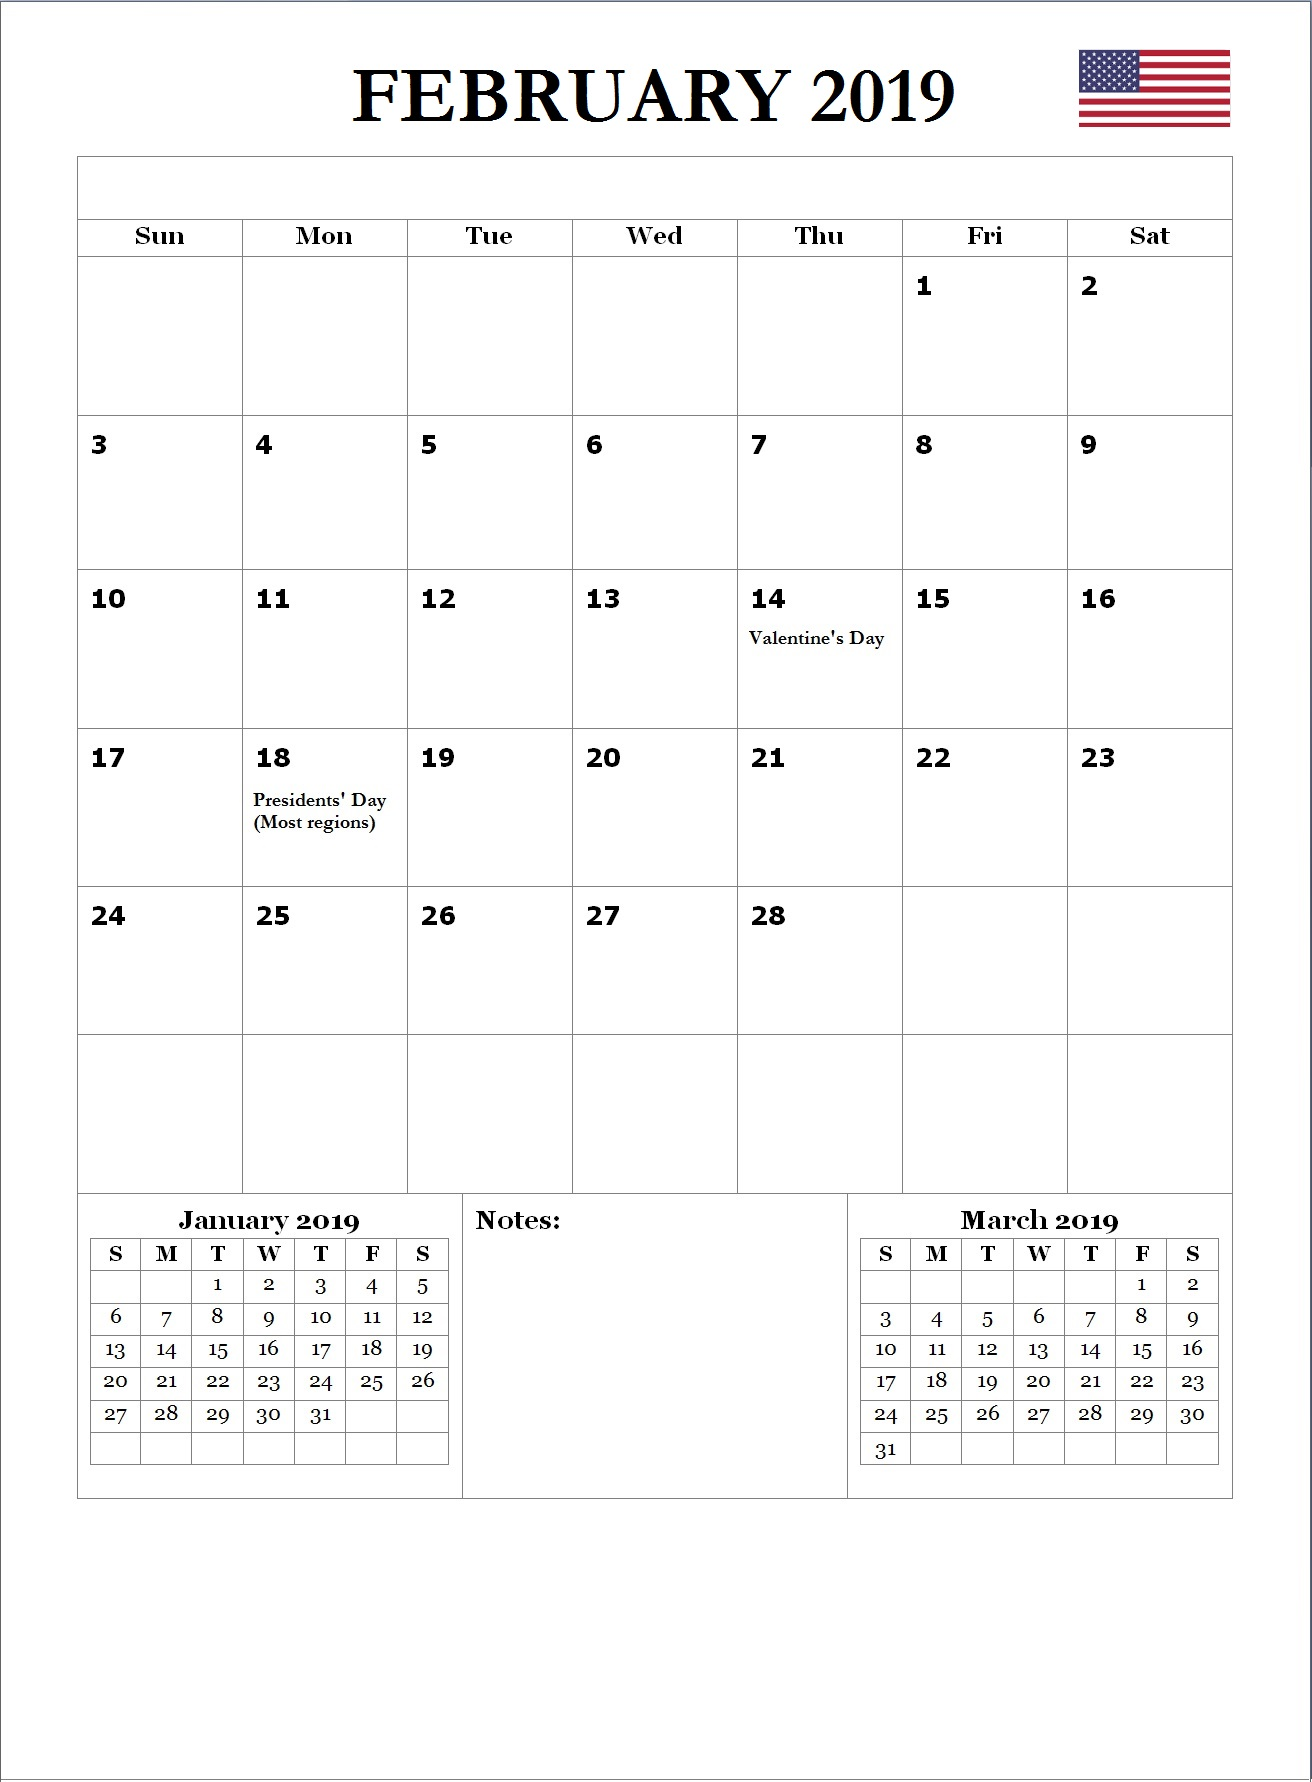 2019 February USA Holidays Calendar